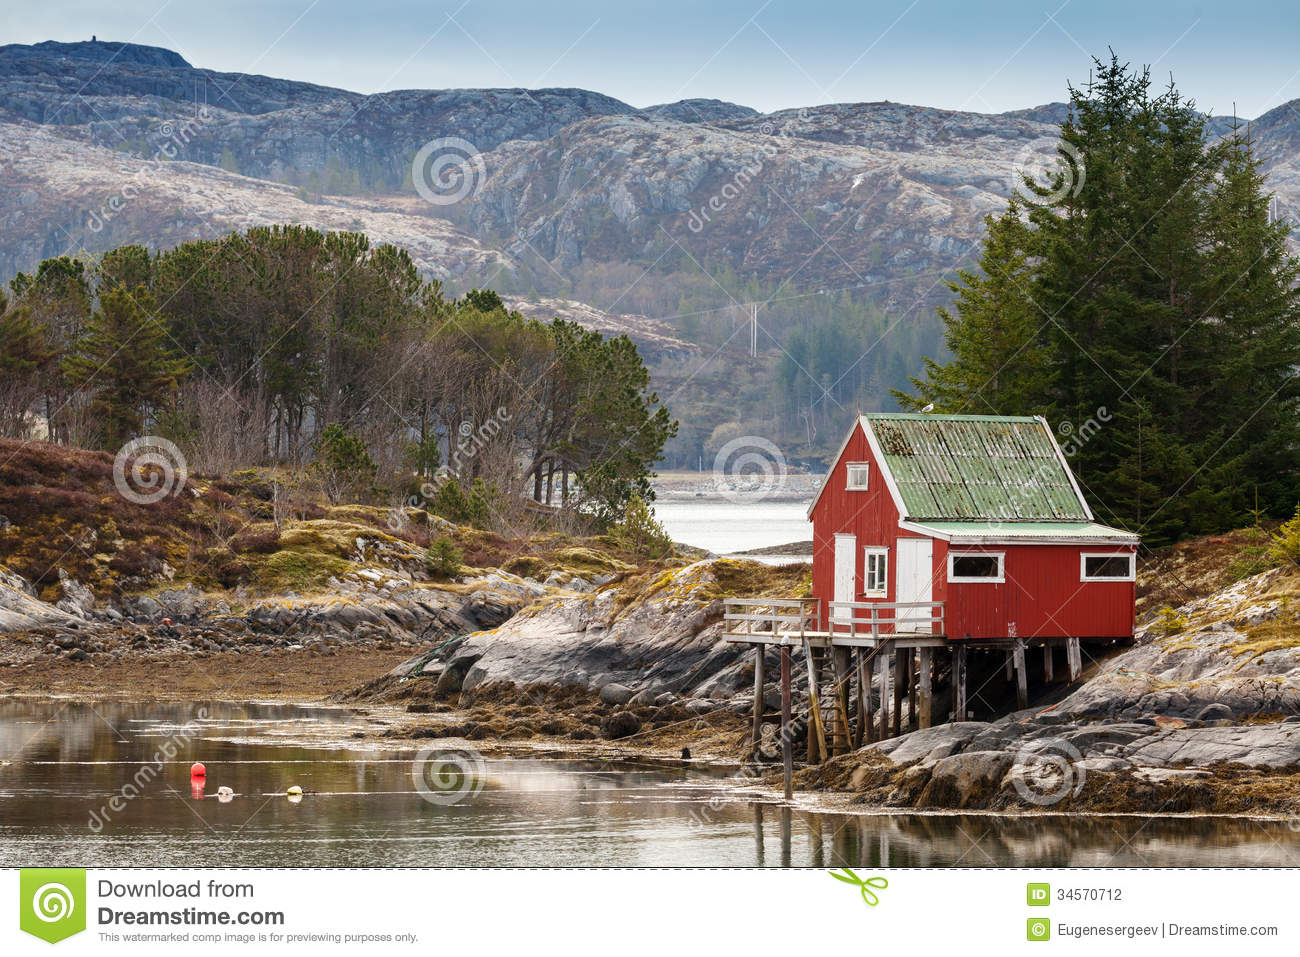 Watch moreover Stock Photography Red Wooden House Coast Norway Stands Sea Image34570712 in addition Single Floor 3 Bedroom House Plan Kerala besides Outdoorsman Log Cabin Kit furthermore amicalolahomeplans. on mountain cottage house plans